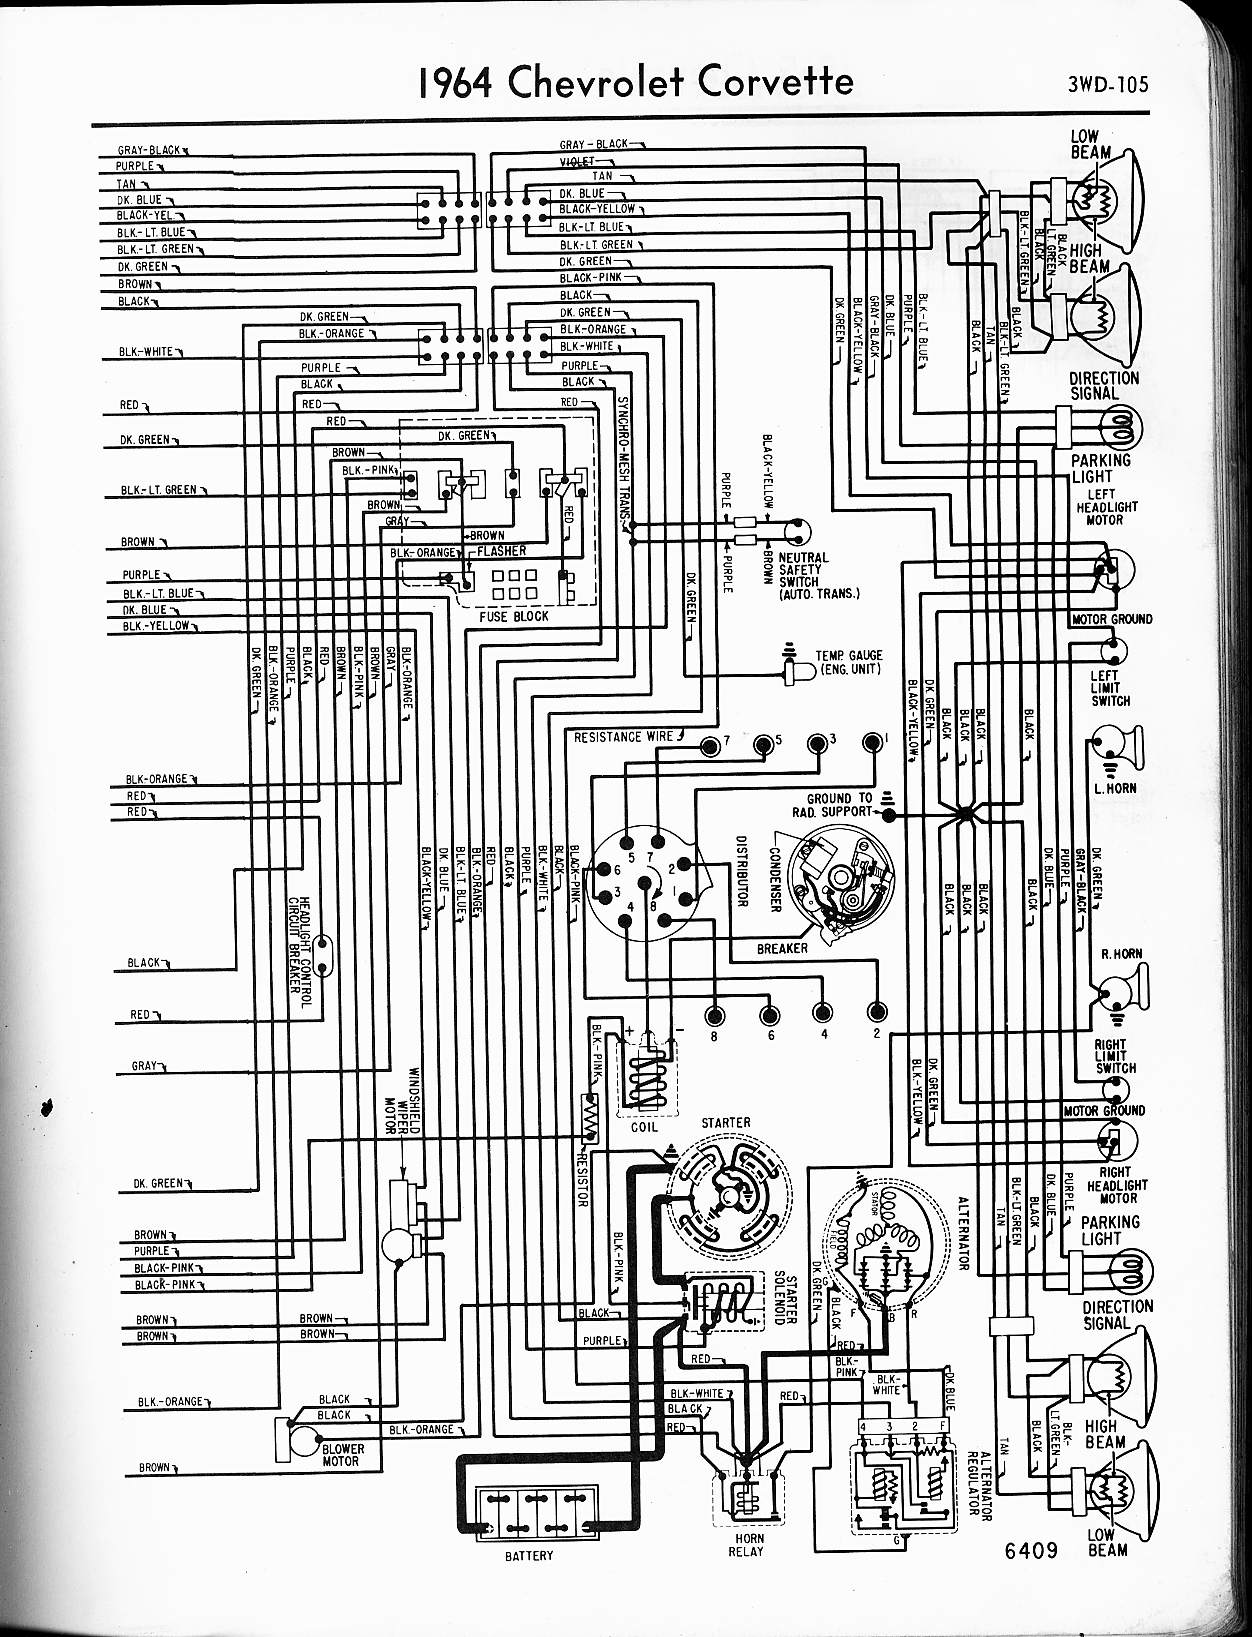 [SODI_2457]   738E24A 1966 Corvette Wiring Diagrams Book | Wiring Library | 1966 Corvette Wiring Diagram Pdf |  | Wiring Library